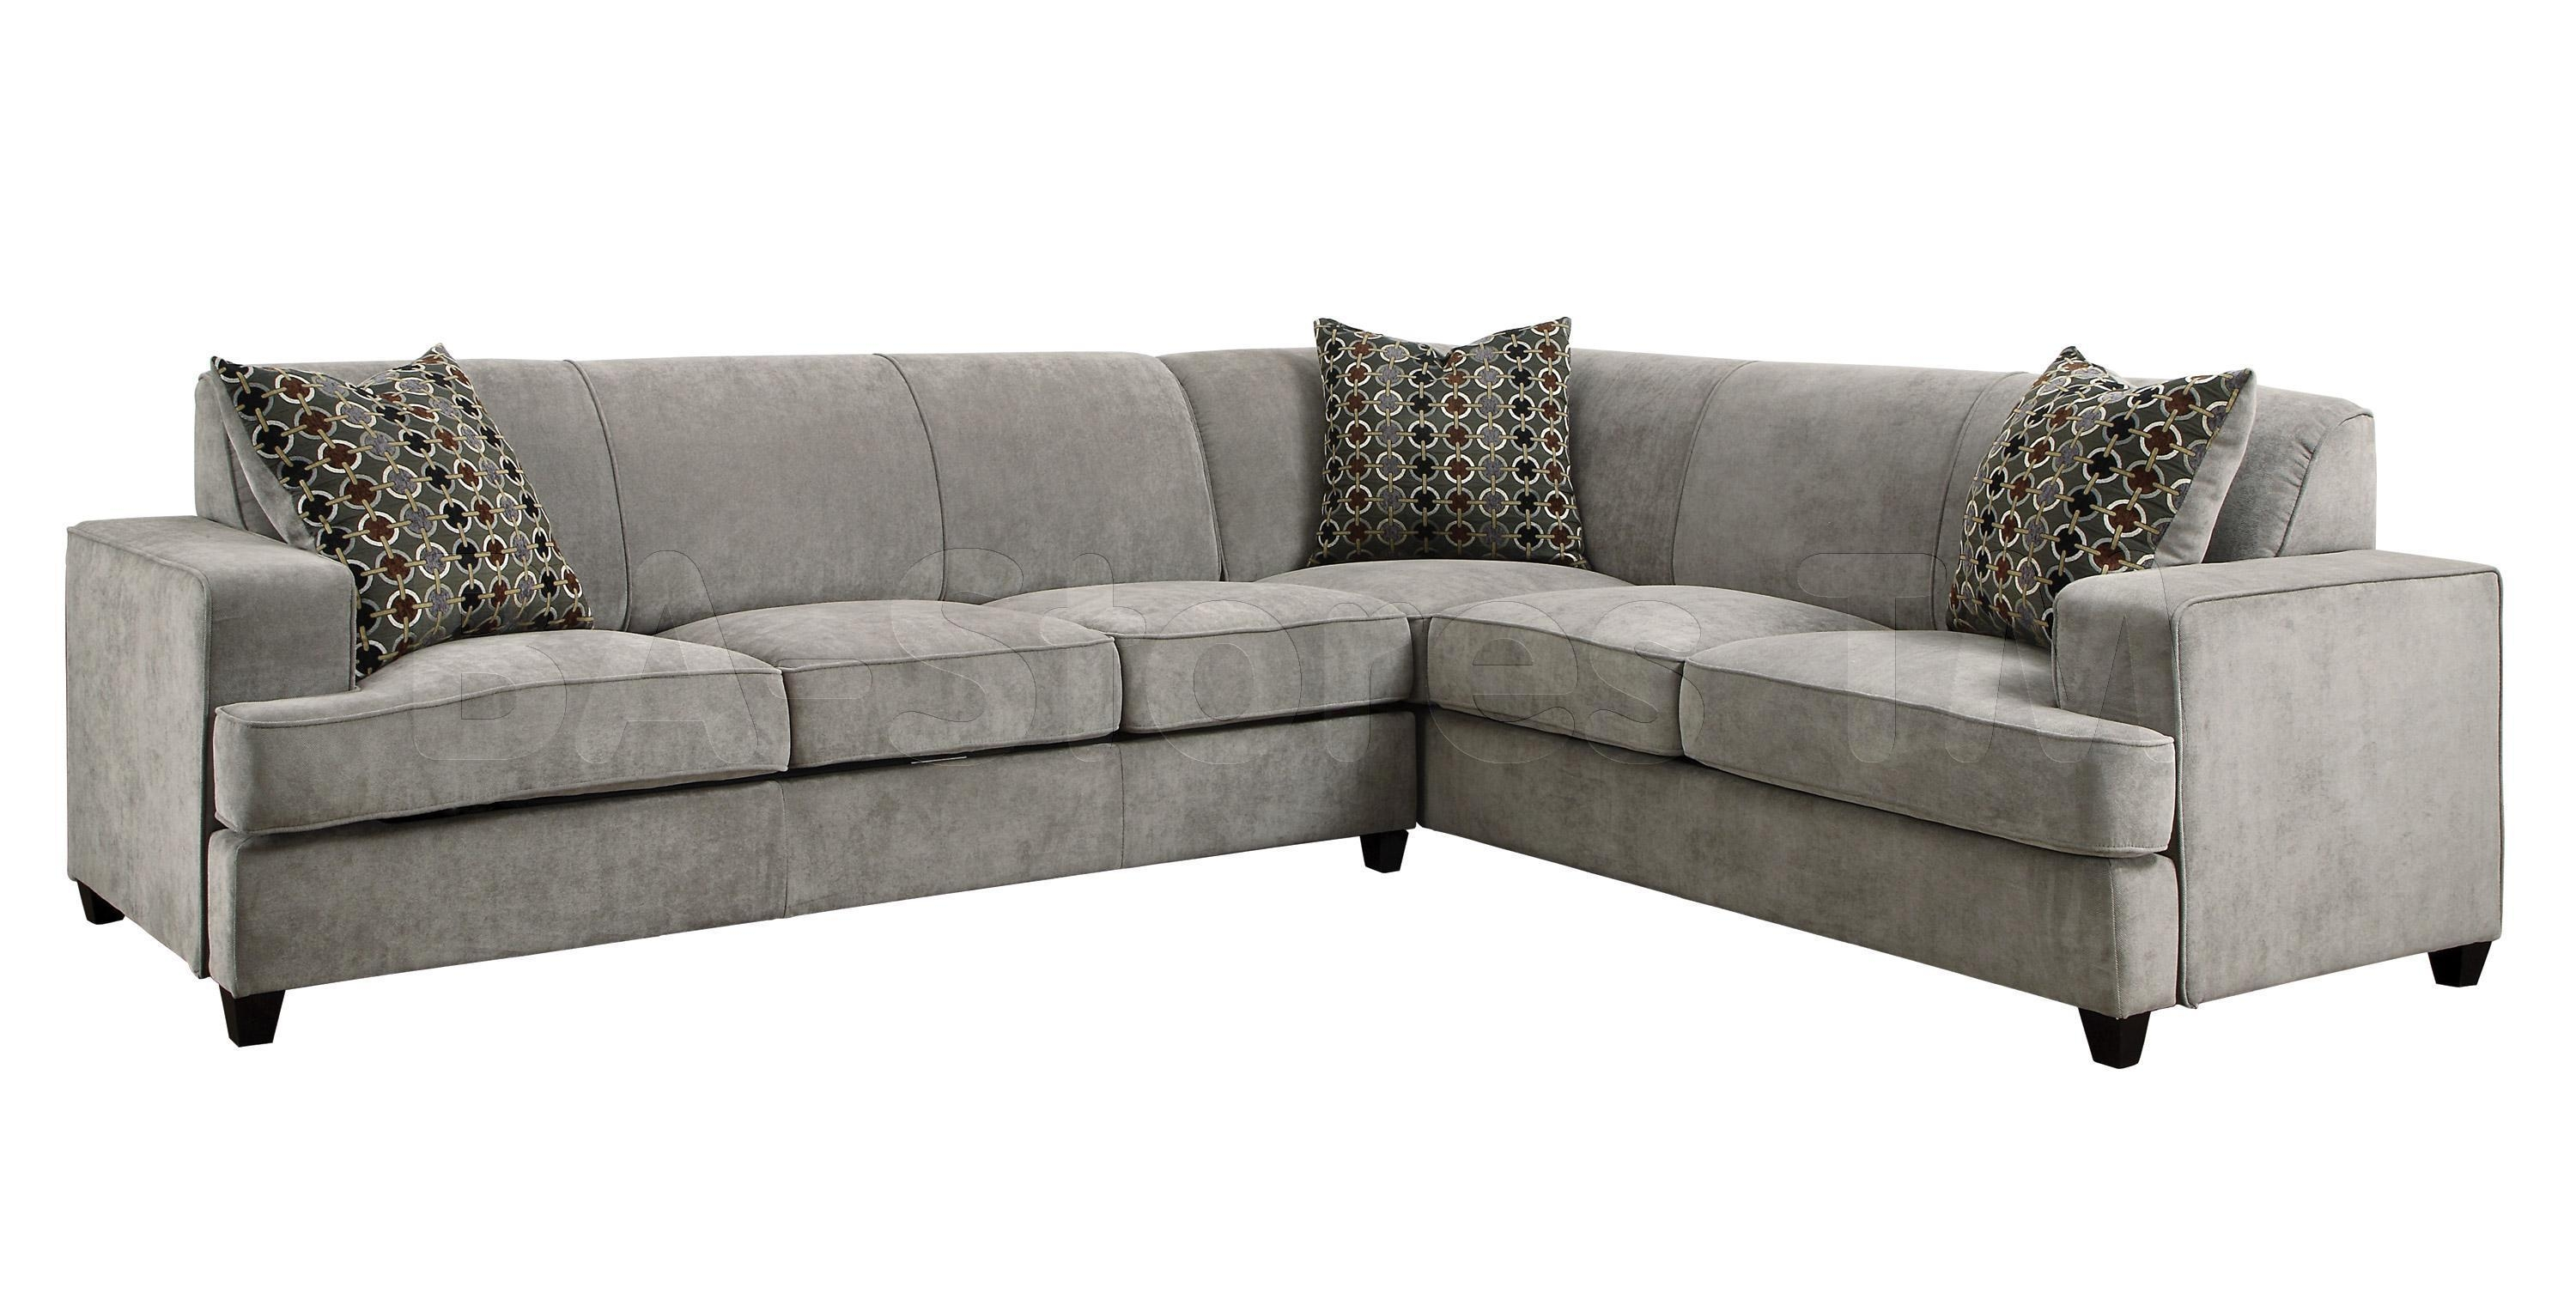 Sofas Center Charcoal Grey Sectional Sofa Cleanupflorida Com – Ftfpgh Regarding Charcoal Gray Sectional Sofas (Image 20 of 20)